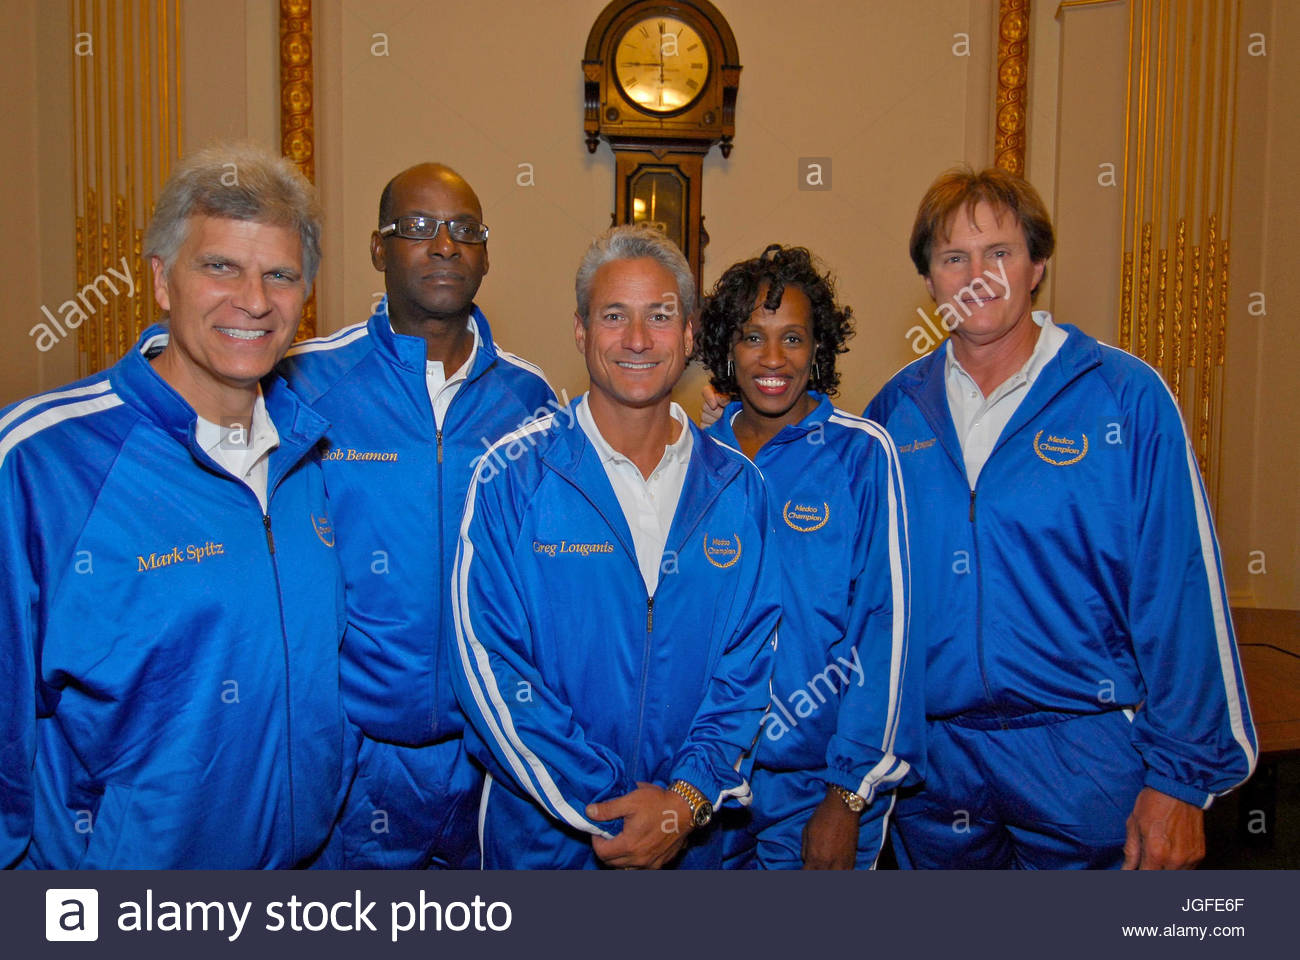 Mark Spitz, Bob Beamon, Greg Louganis, Jackie Joyner-Kersee and Bruce Jenner attend the ringing in a new era in - Stock Image